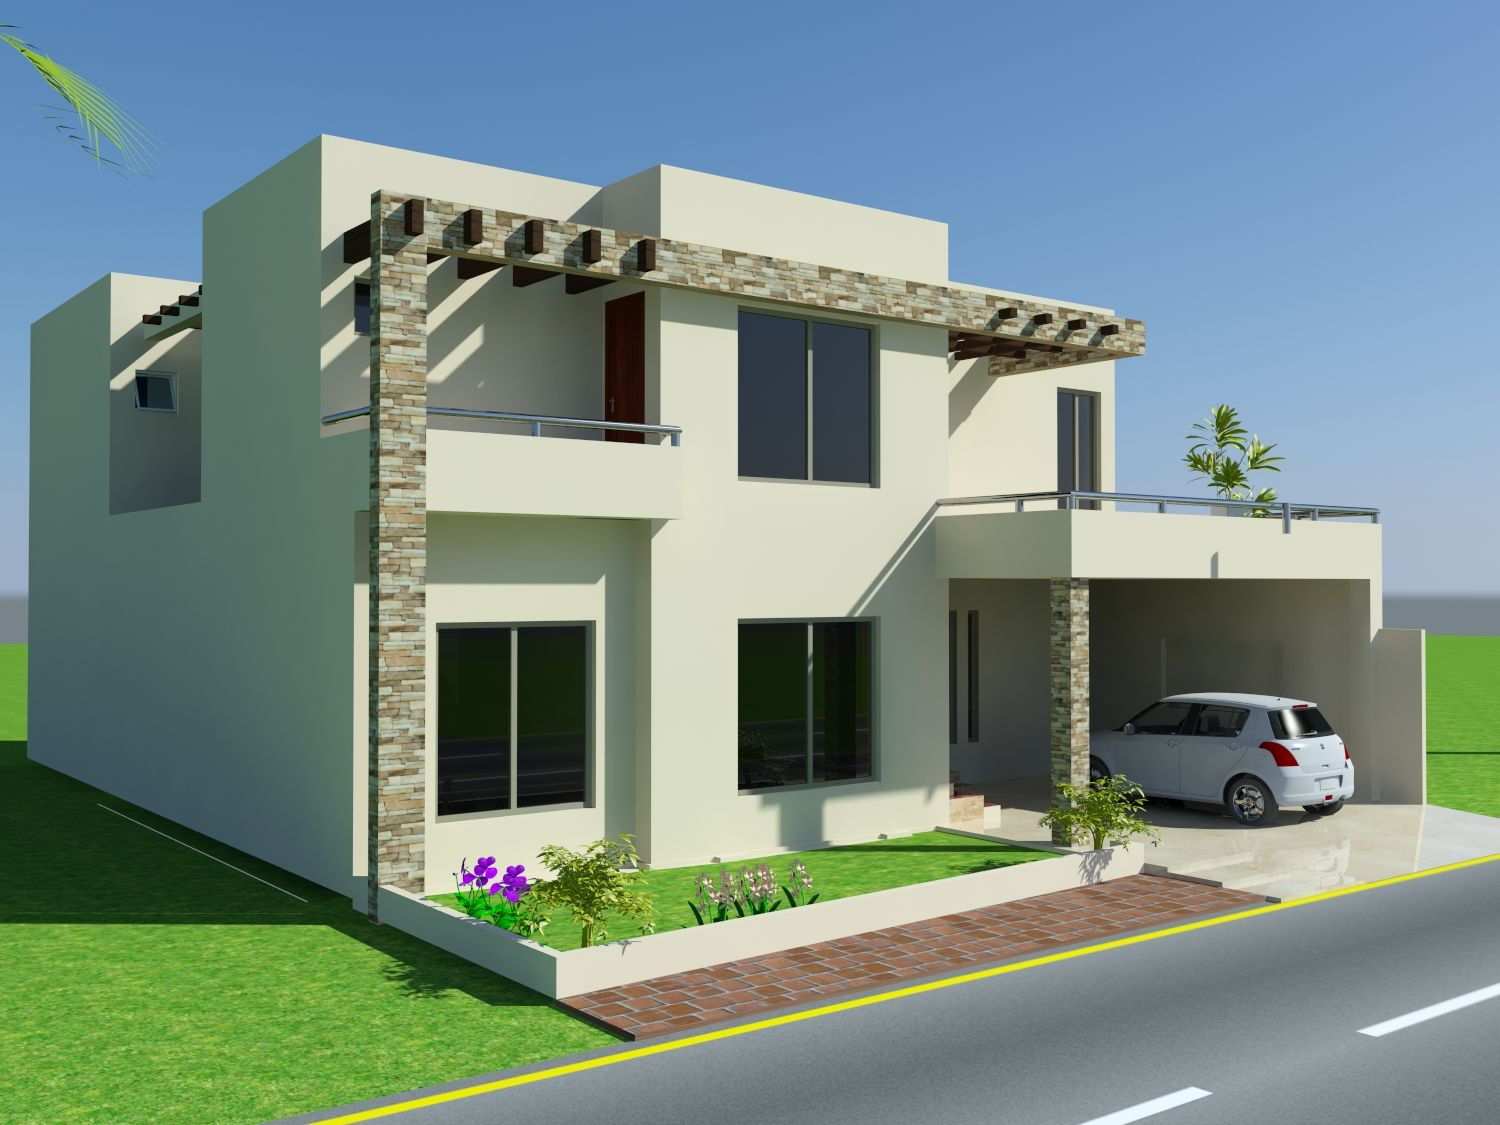 3d front elevation com 10 marla house design mian wali for 5 marla house modern design